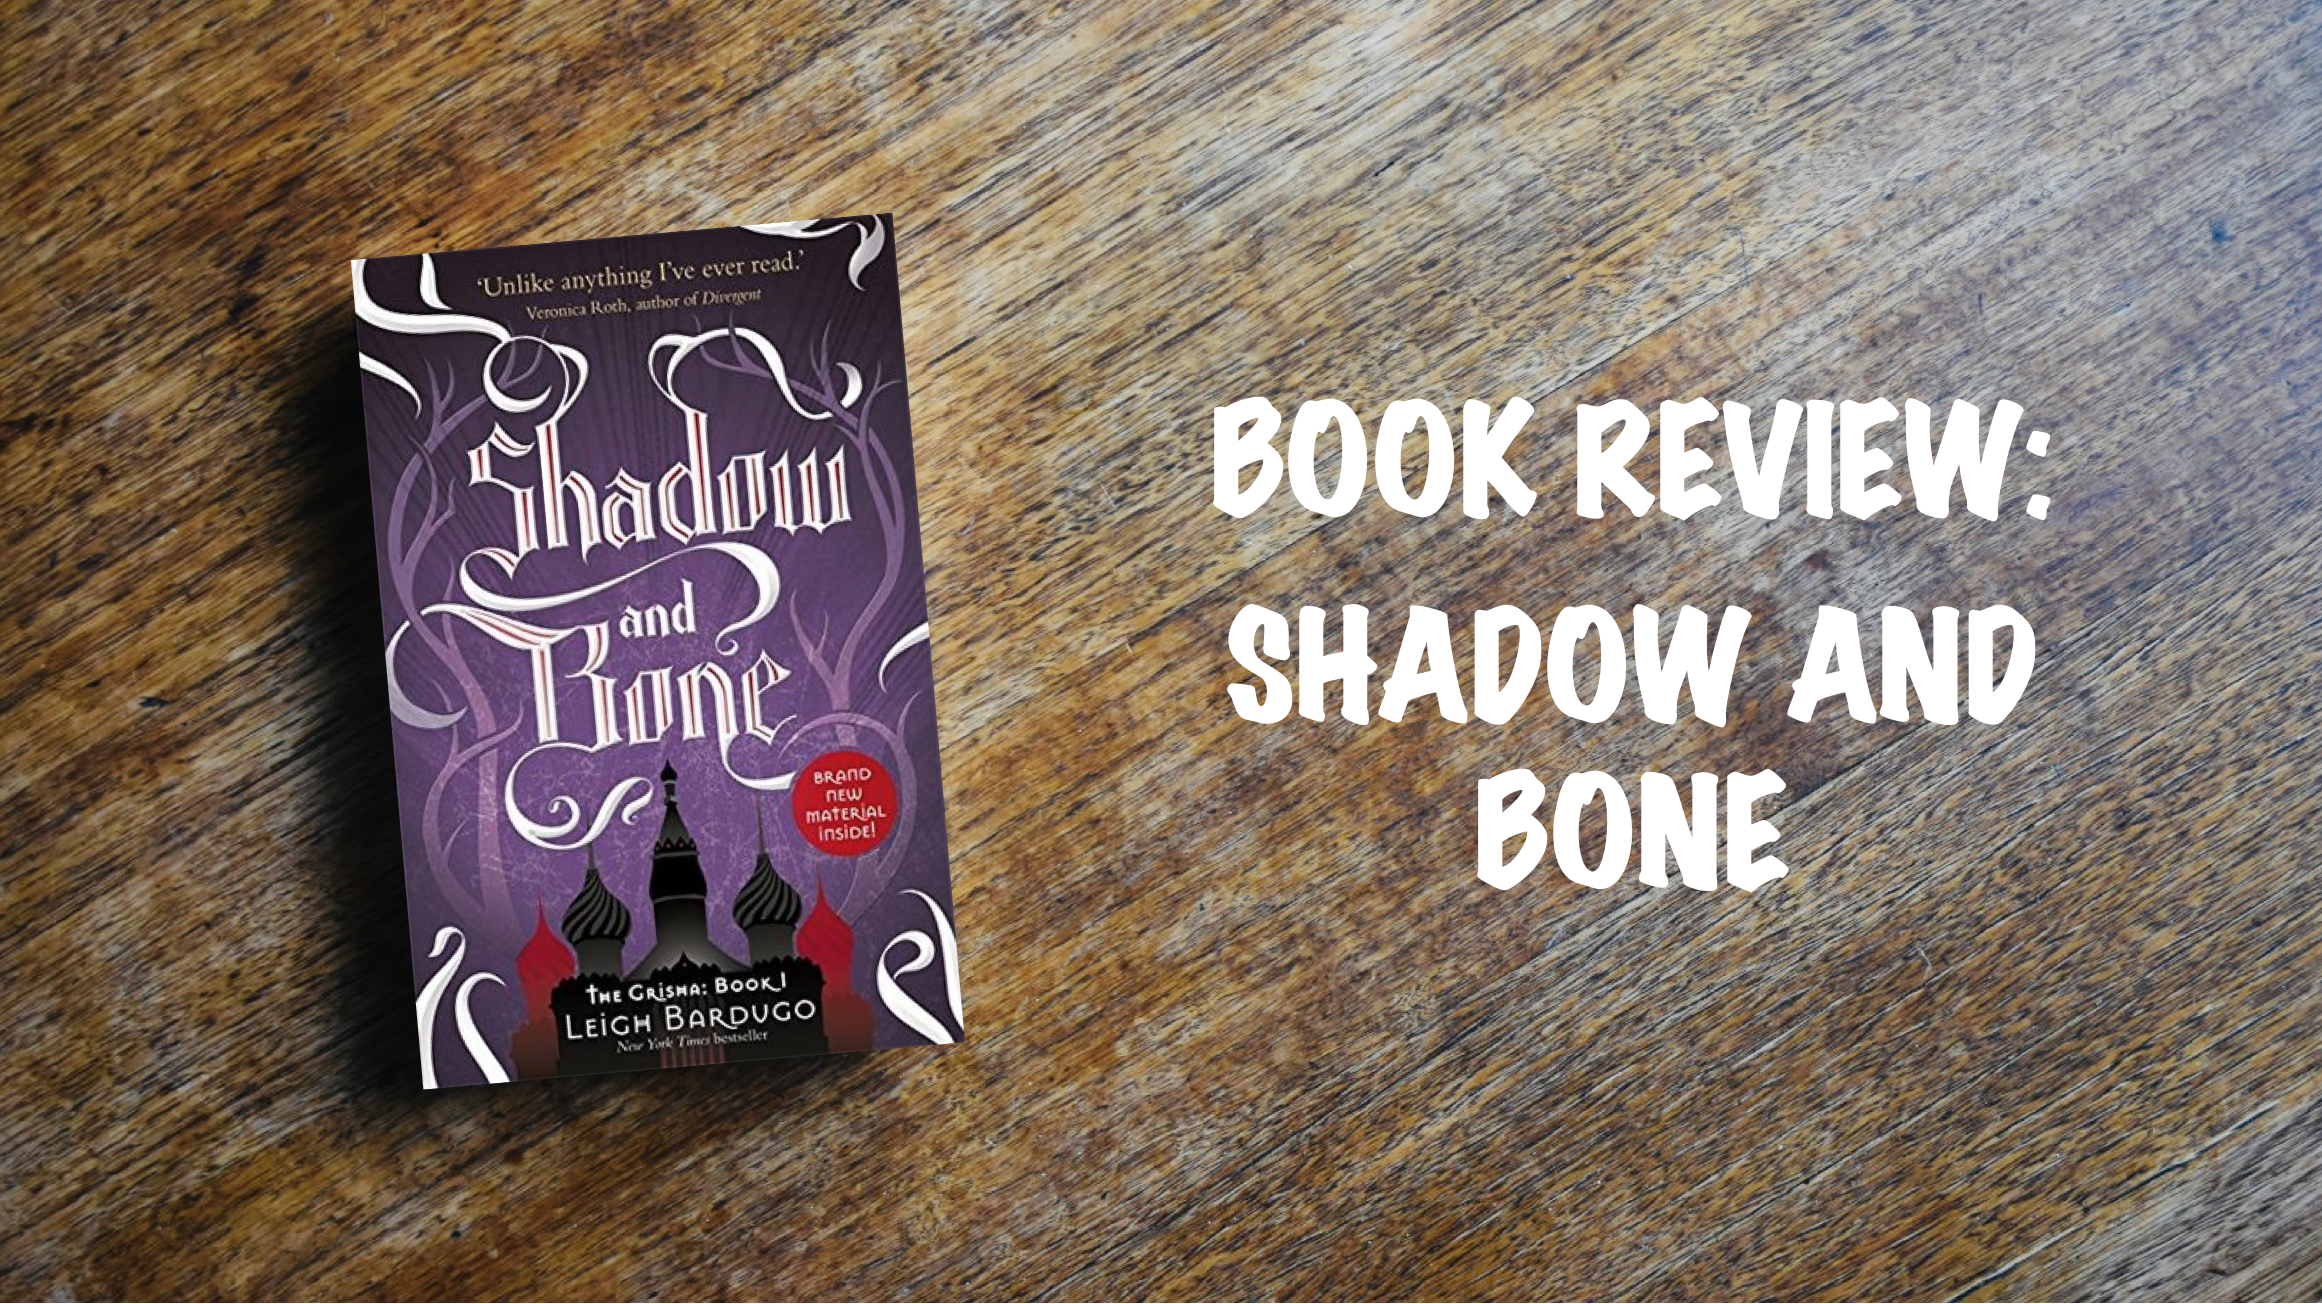 Book Review Banner: Shadow and Bone